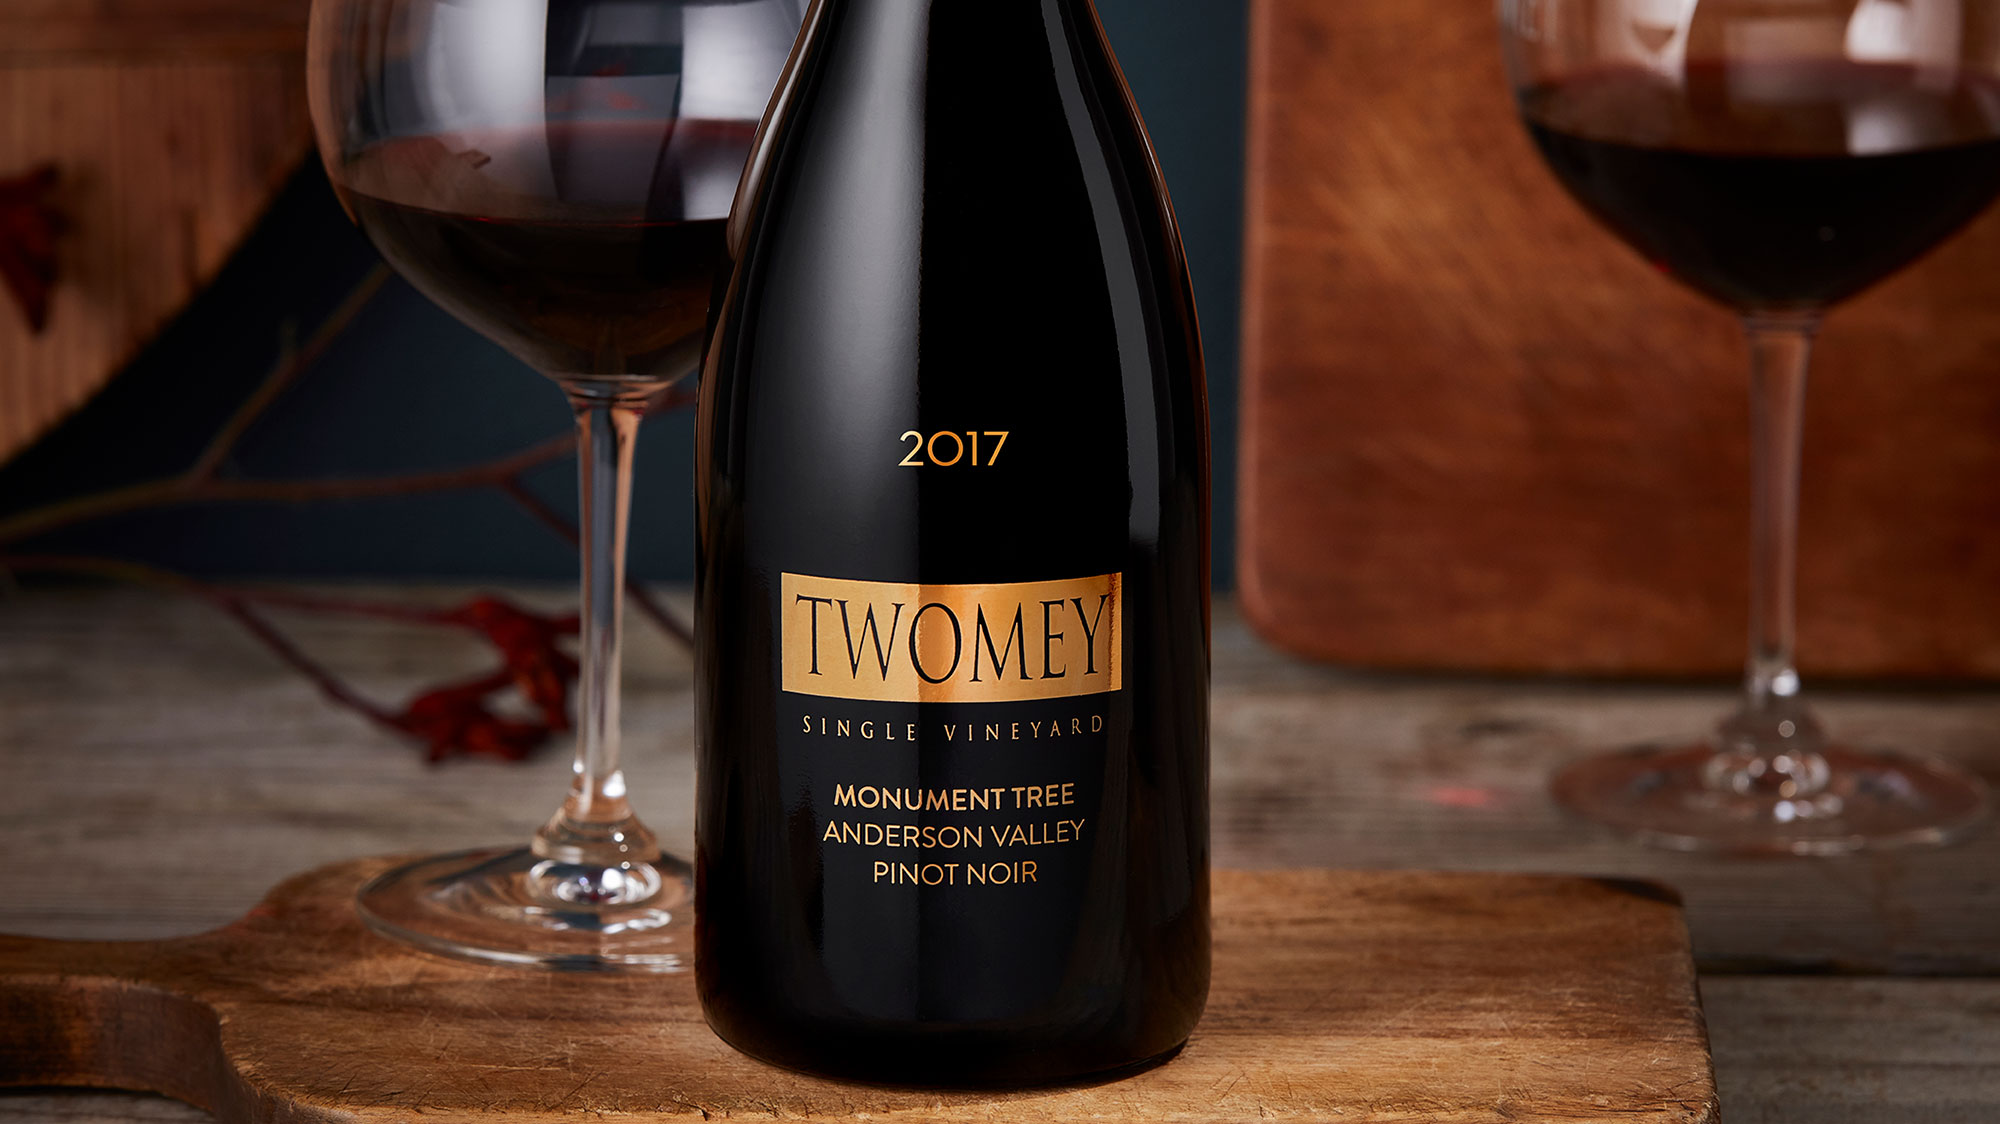 Twomey Monument Tree Pinot Noir bottle